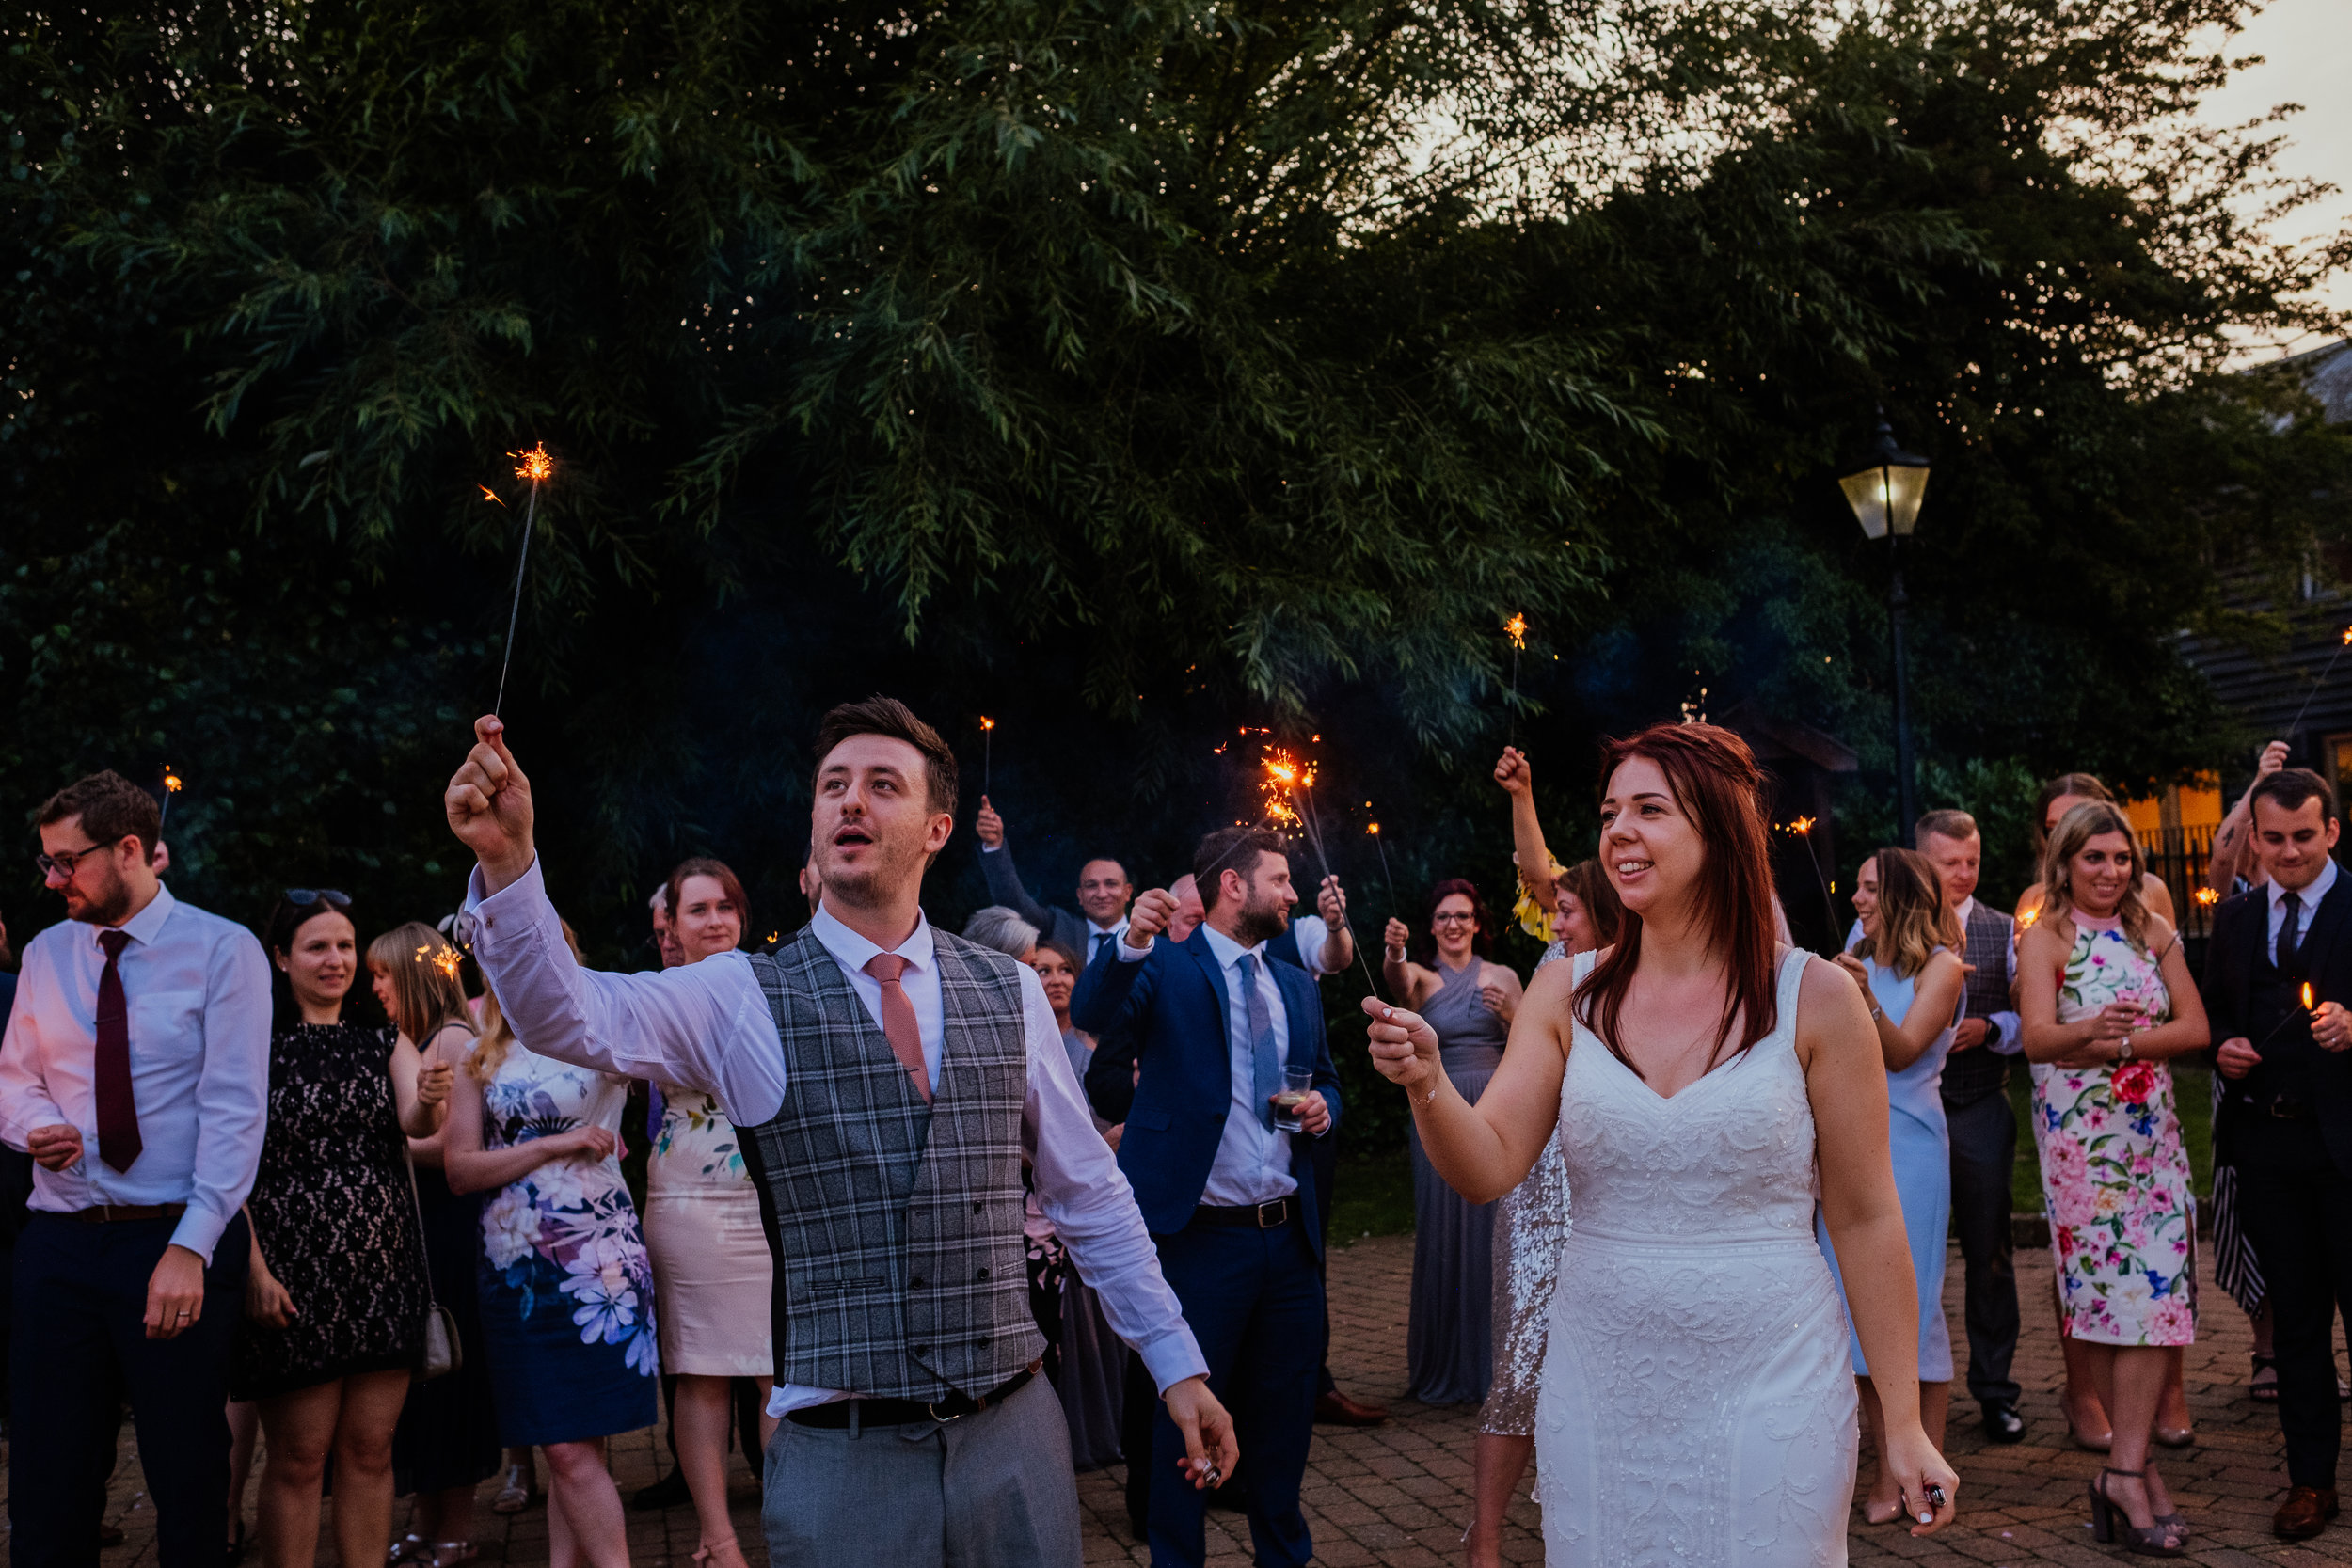 Sparklers at Tewin Bury Farm wedding